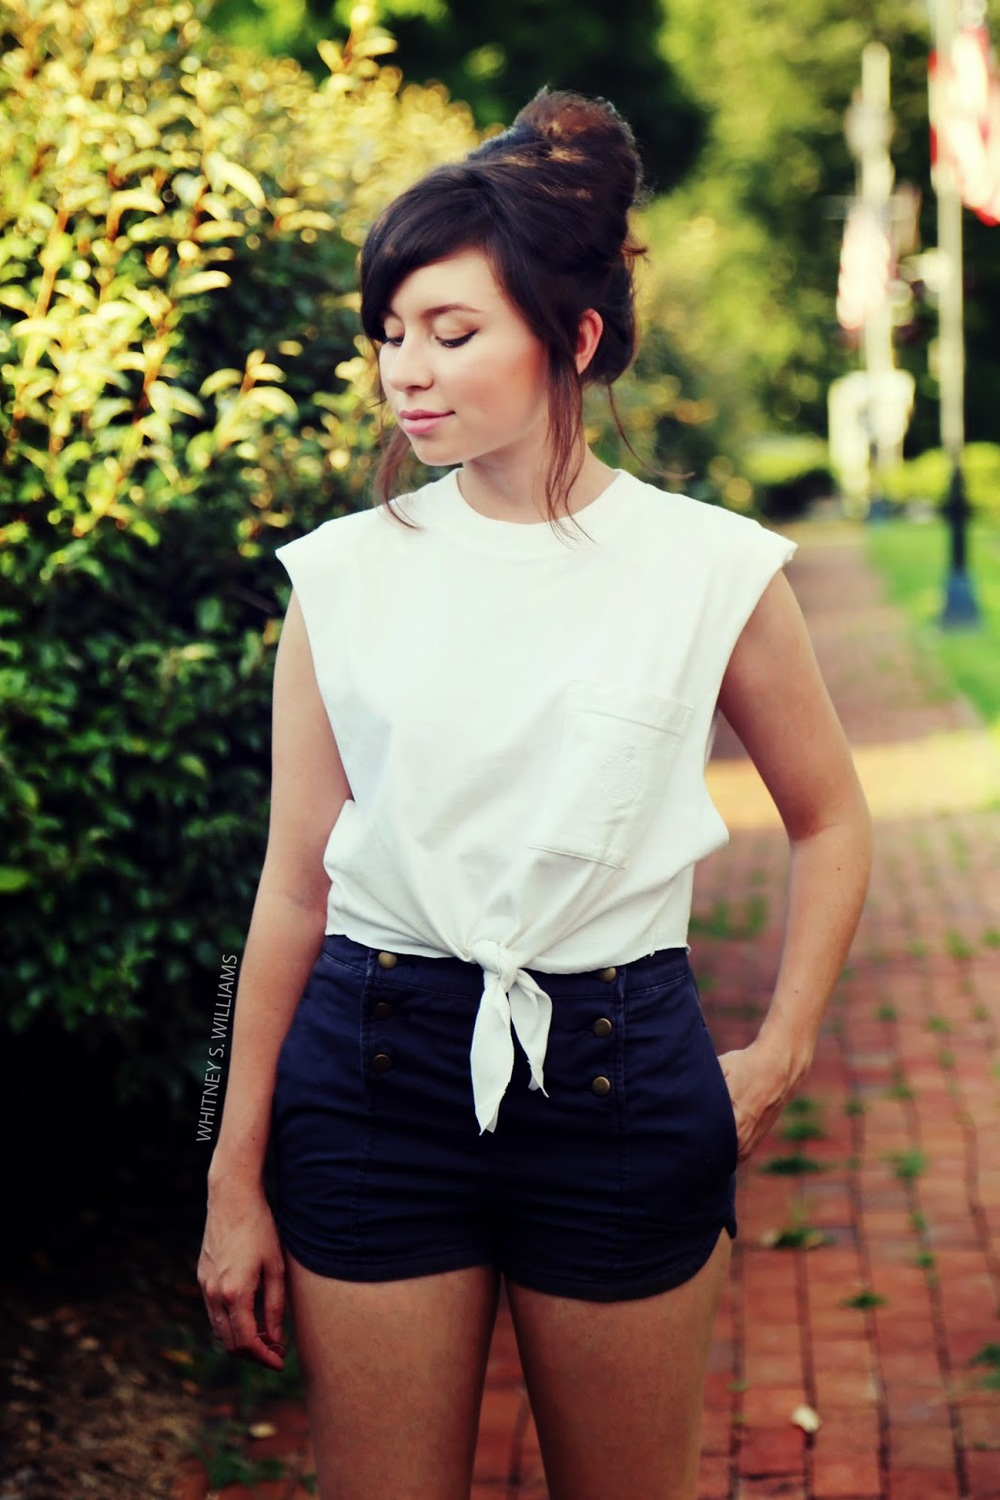 alaLadywolf_whitney+s+williams_DIY_plain+white+tee_main4.jpg